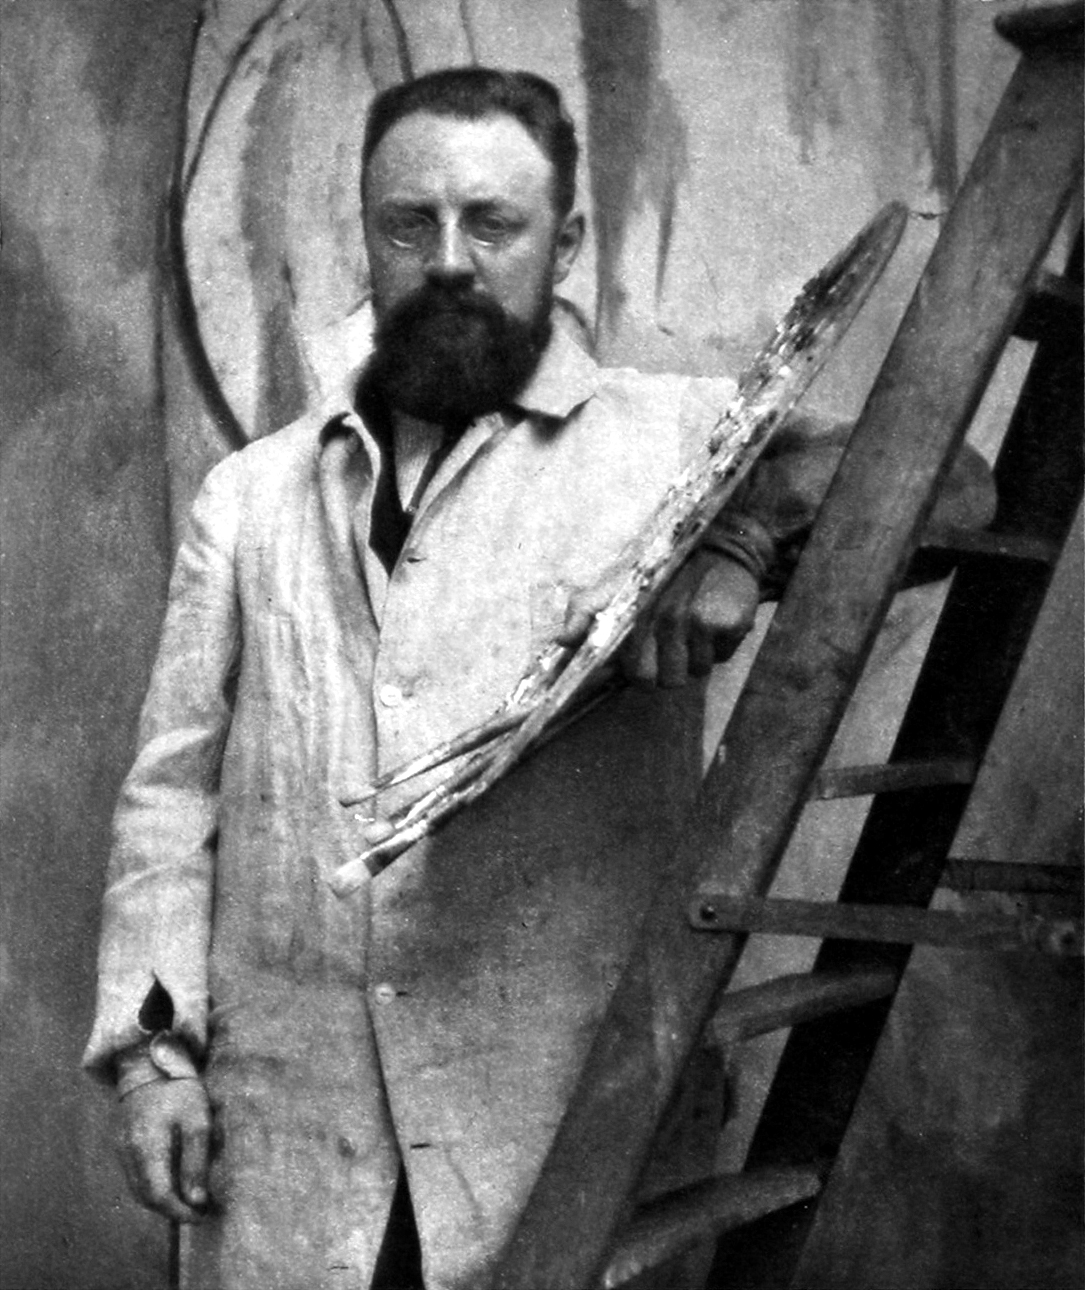 Henri Matisse Wikiquote - Man able balance impossible objects